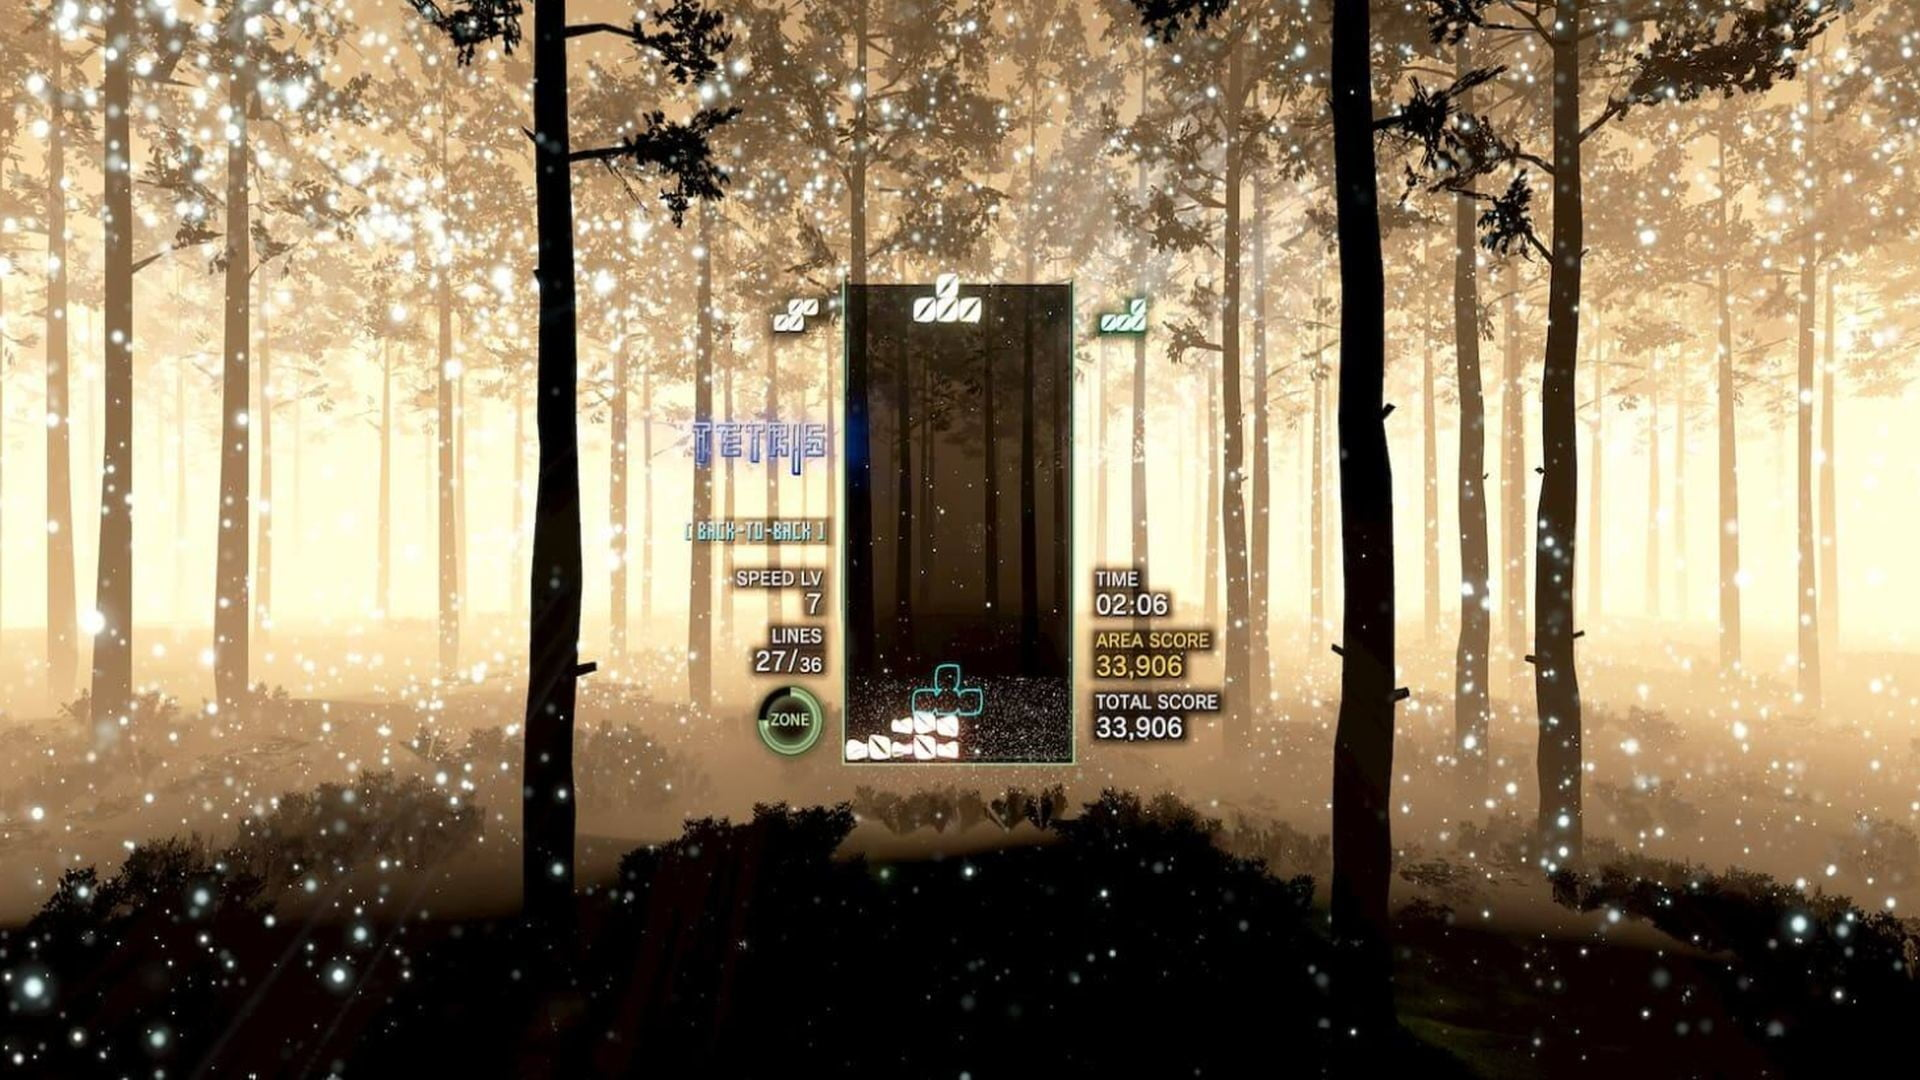 Tetris Effect coming to PC gamers Via Epic Games Store with